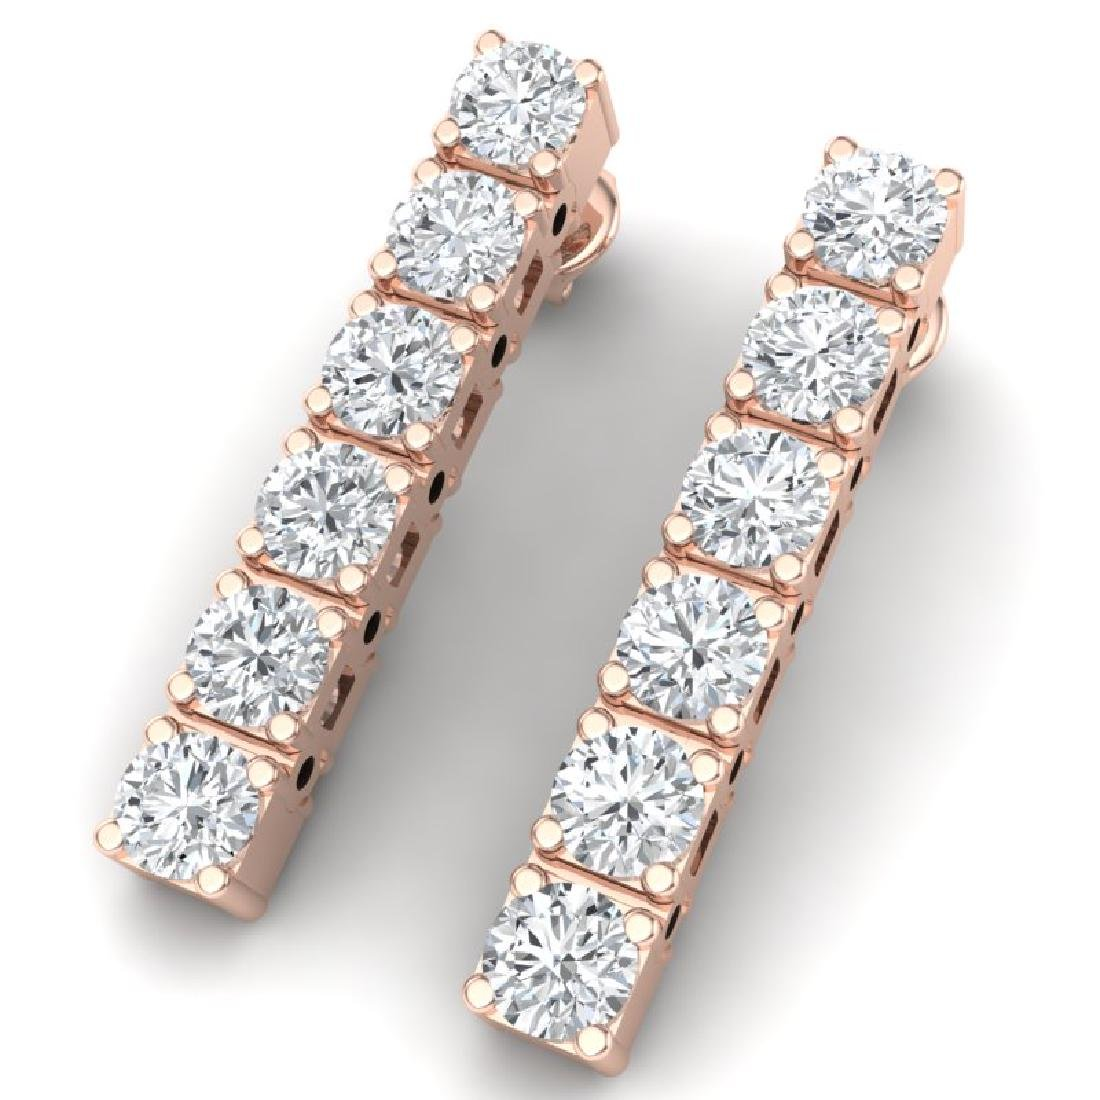 3 CTW Certified VS/SI Diamond Earrings 18K Rose Gold